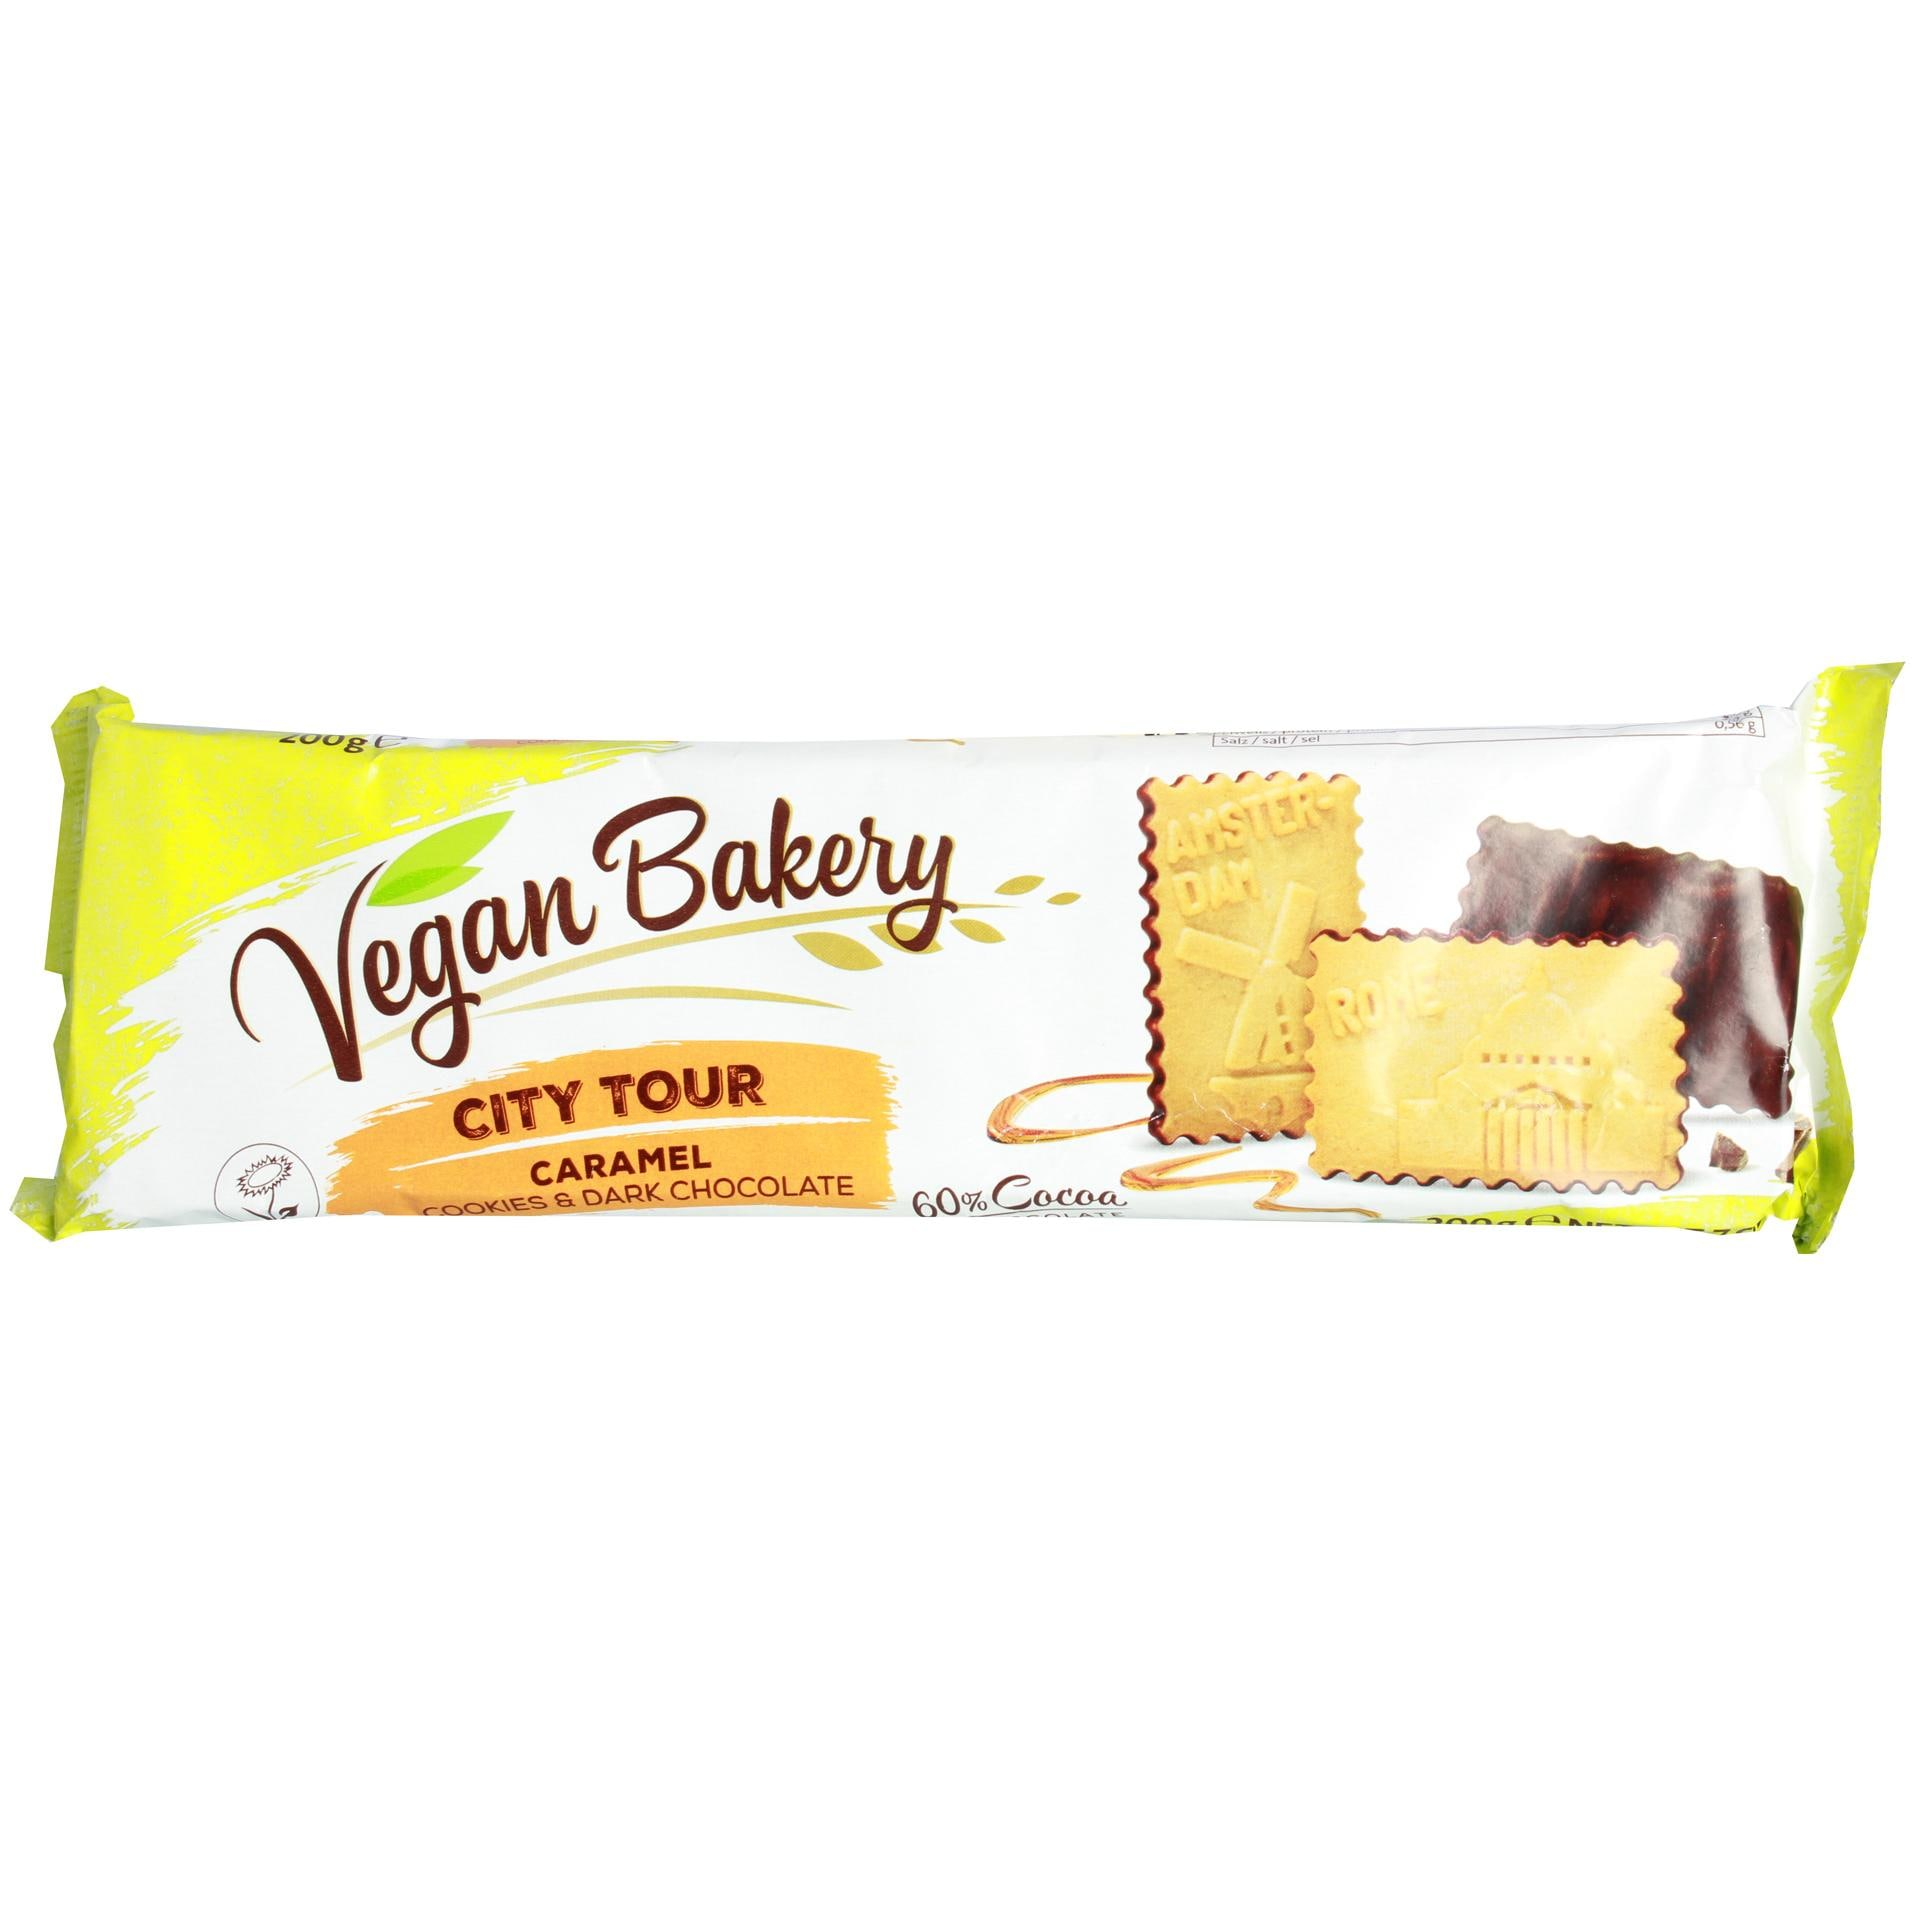 Coppenrath - Vegan Bakery City Tour Karamell Kekse - 200g